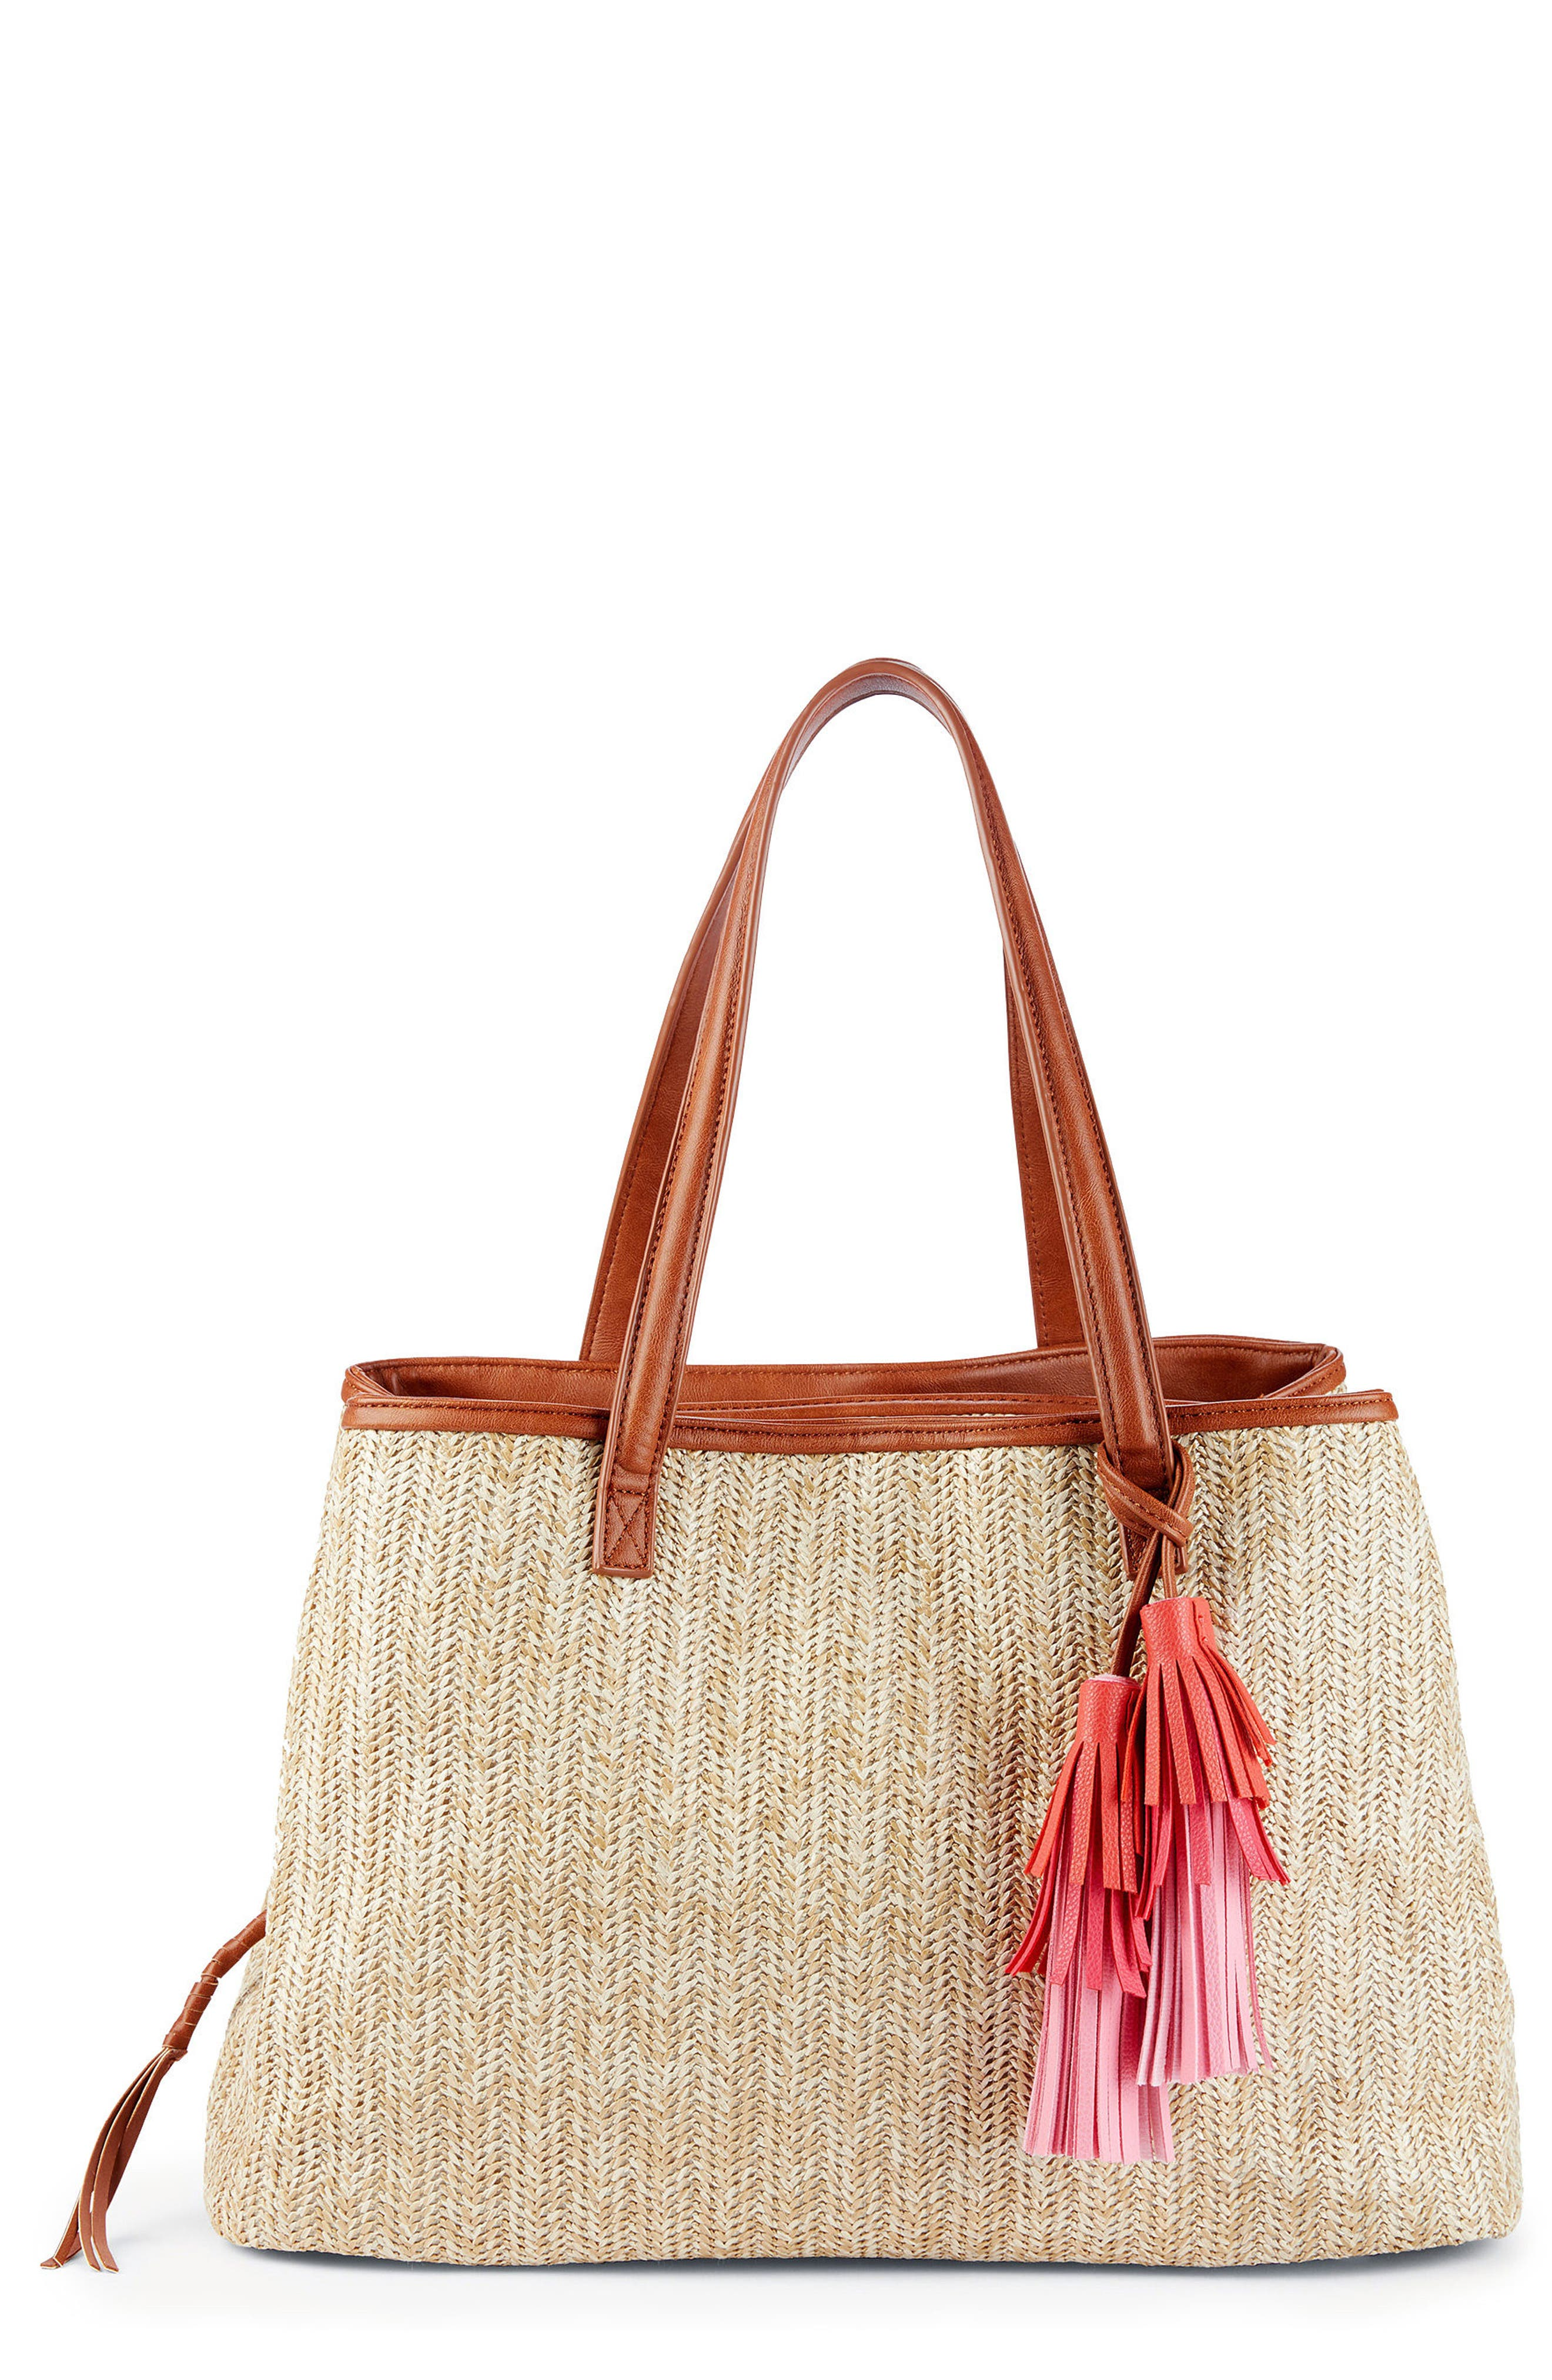 Pipper Faux Leather Tote,                             Main thumbnail 1, color,                             Natural